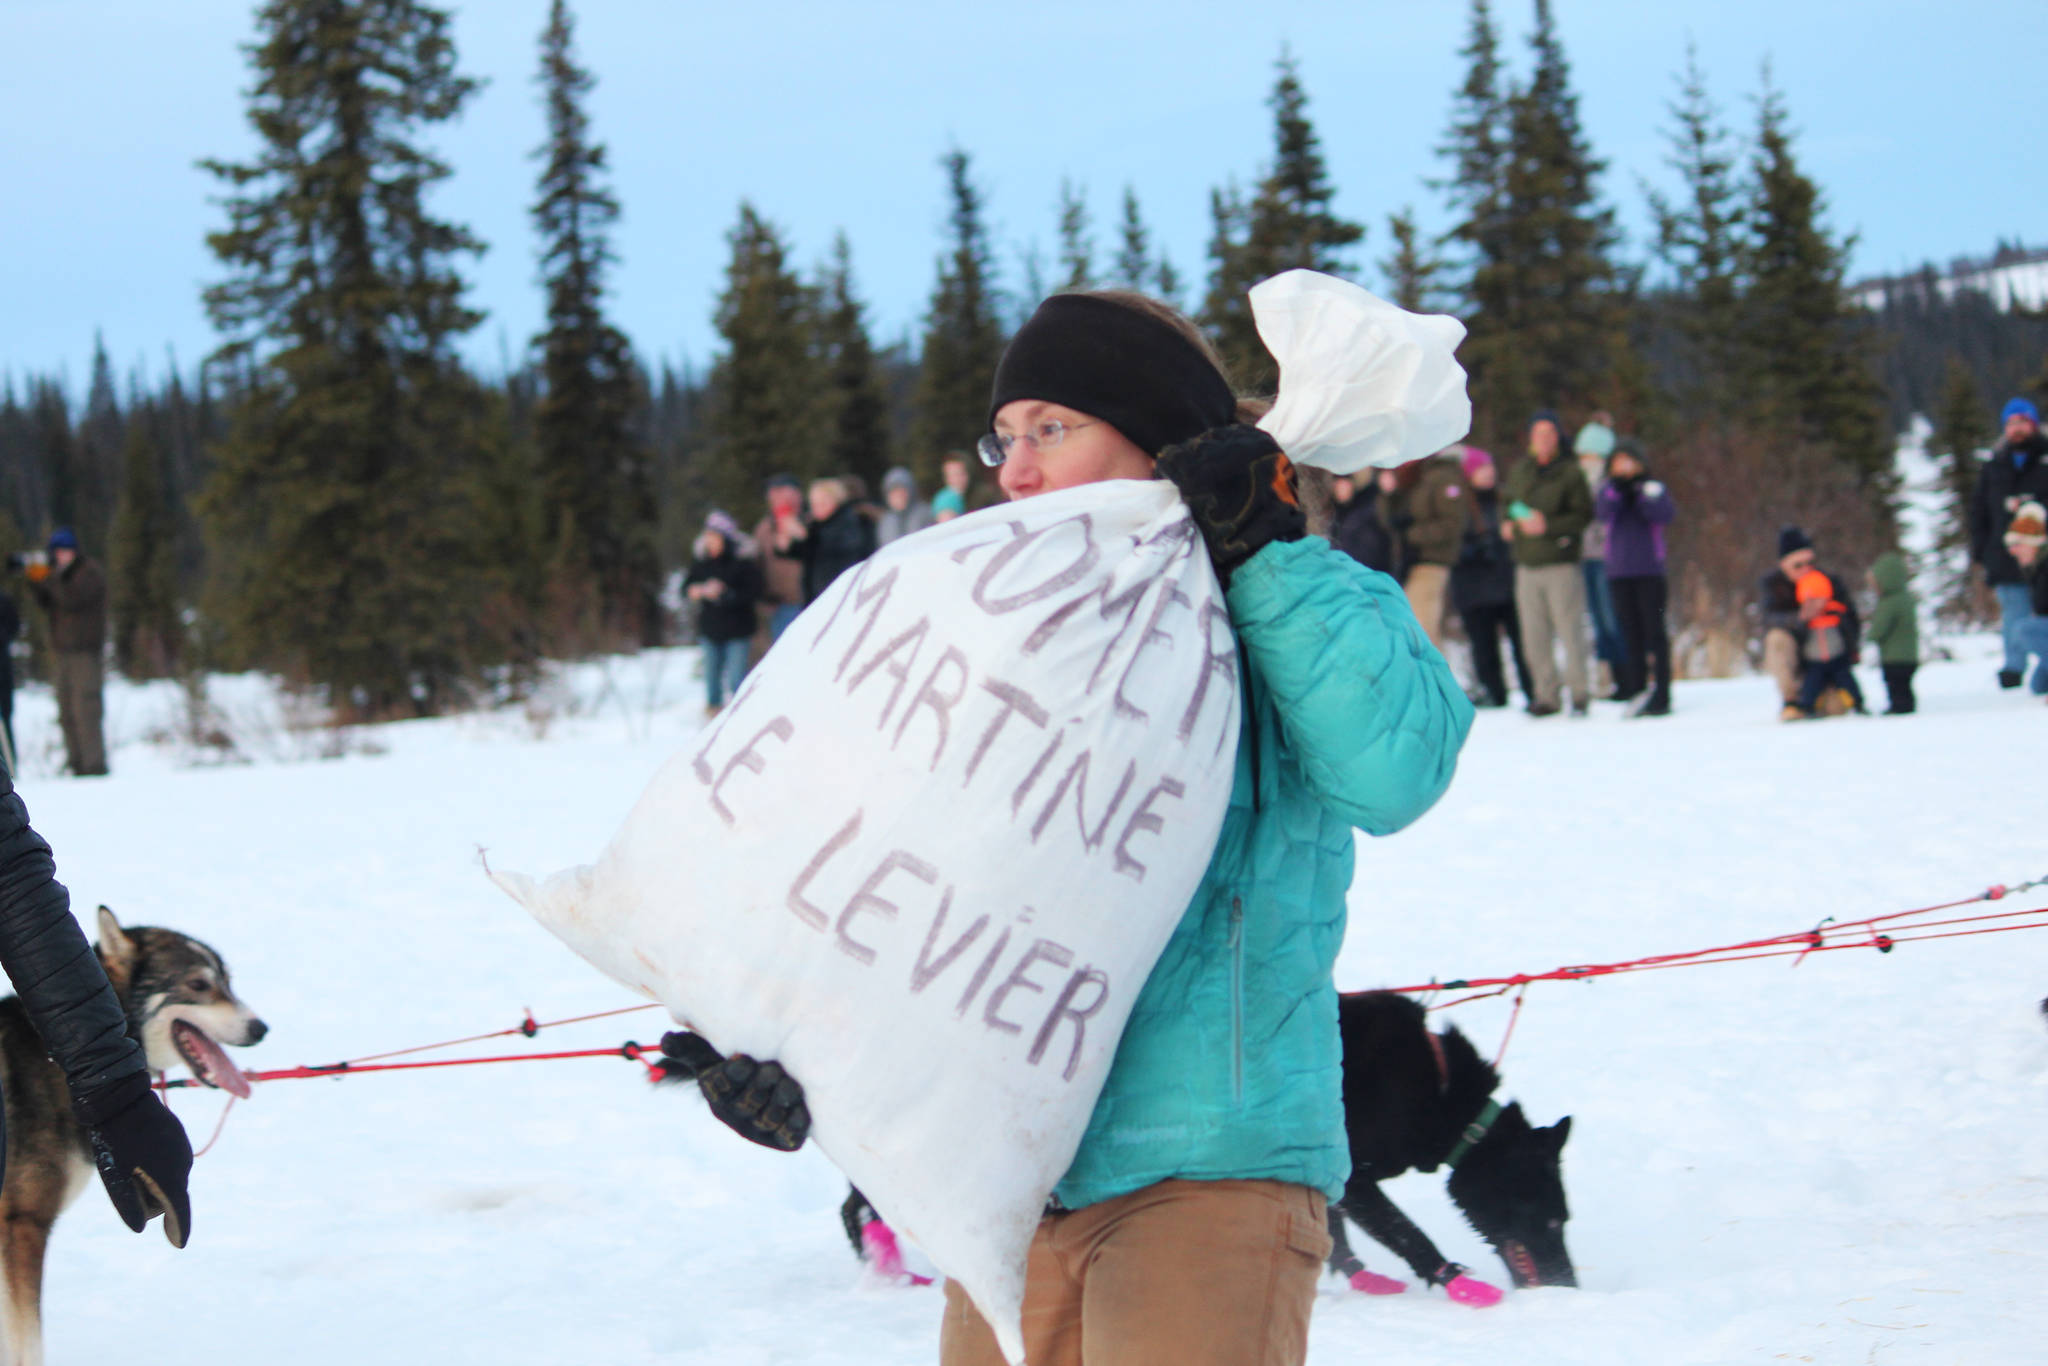 A volunteer carries a bag of supplies to one of the mushers in this year's Tustumena 200 Sled Dog Race while at the first checkpoint Saturday, Jan. 26, 2019 at McNeil Canyon Elementary School near Homer, Alaska. (Photo by Megan Pacer/Homer News)